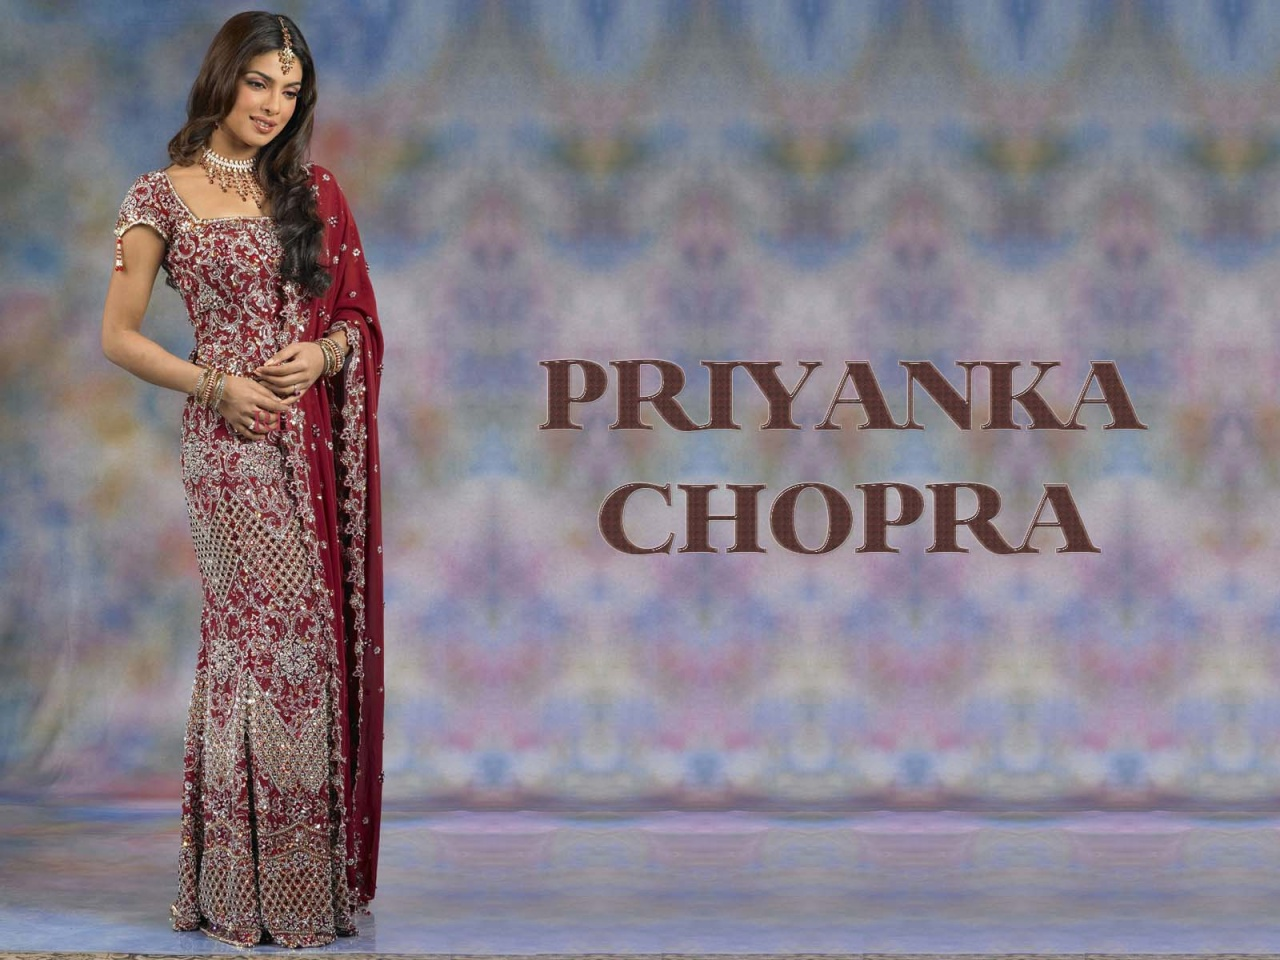 Priyanka Chopra In Dulhan Dresses